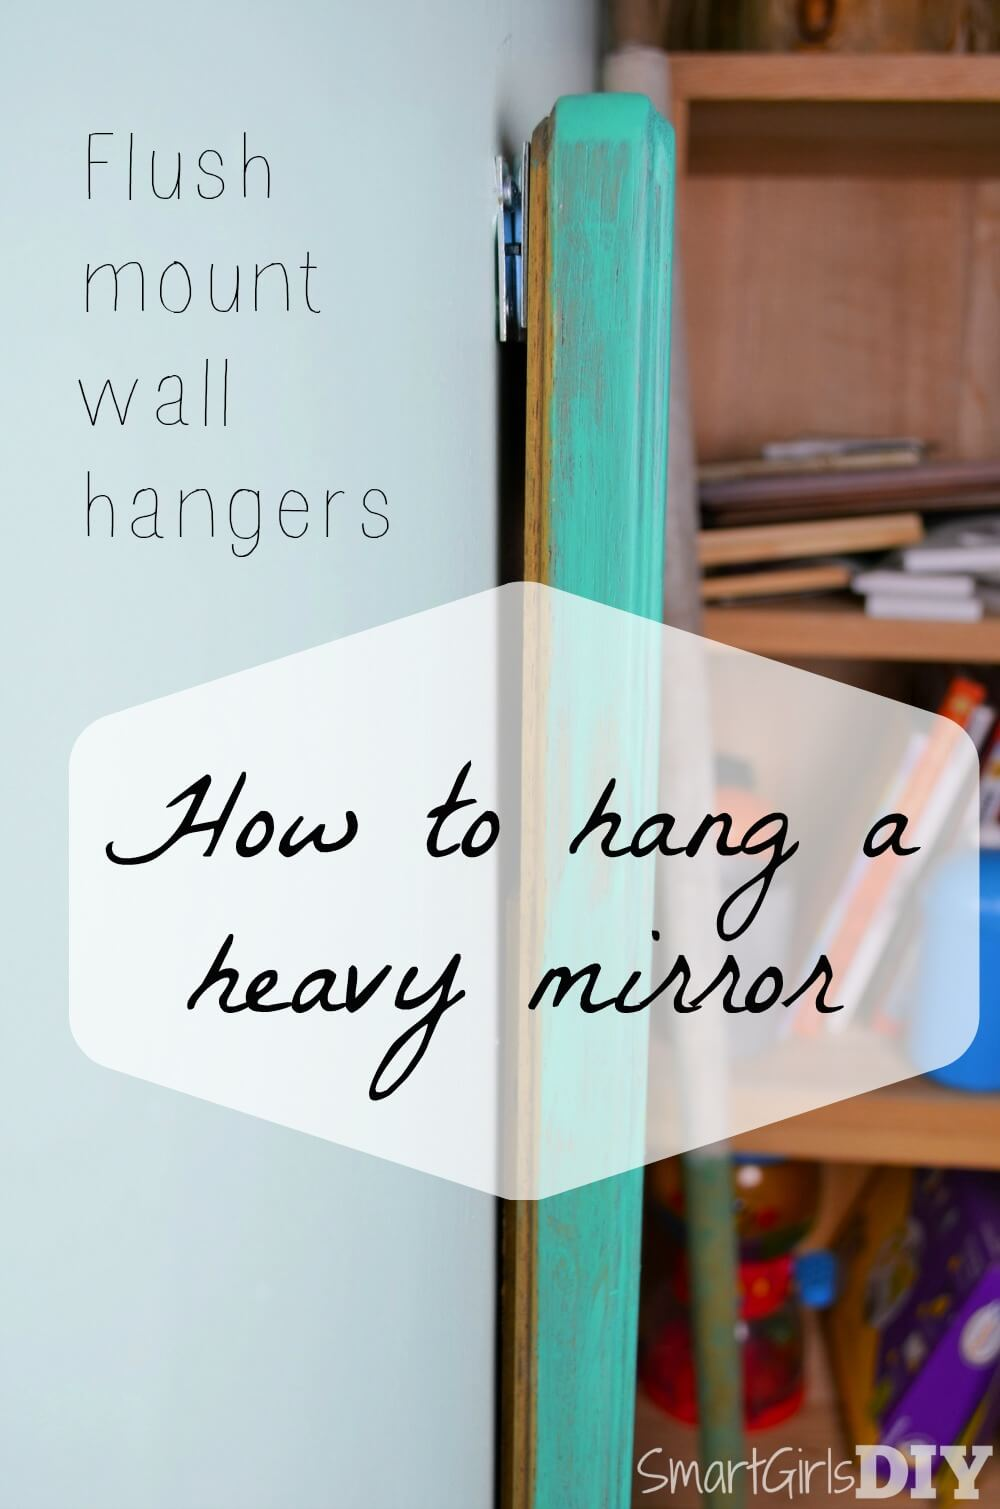 How to hang a heavy mirror with flush mount wall hangers